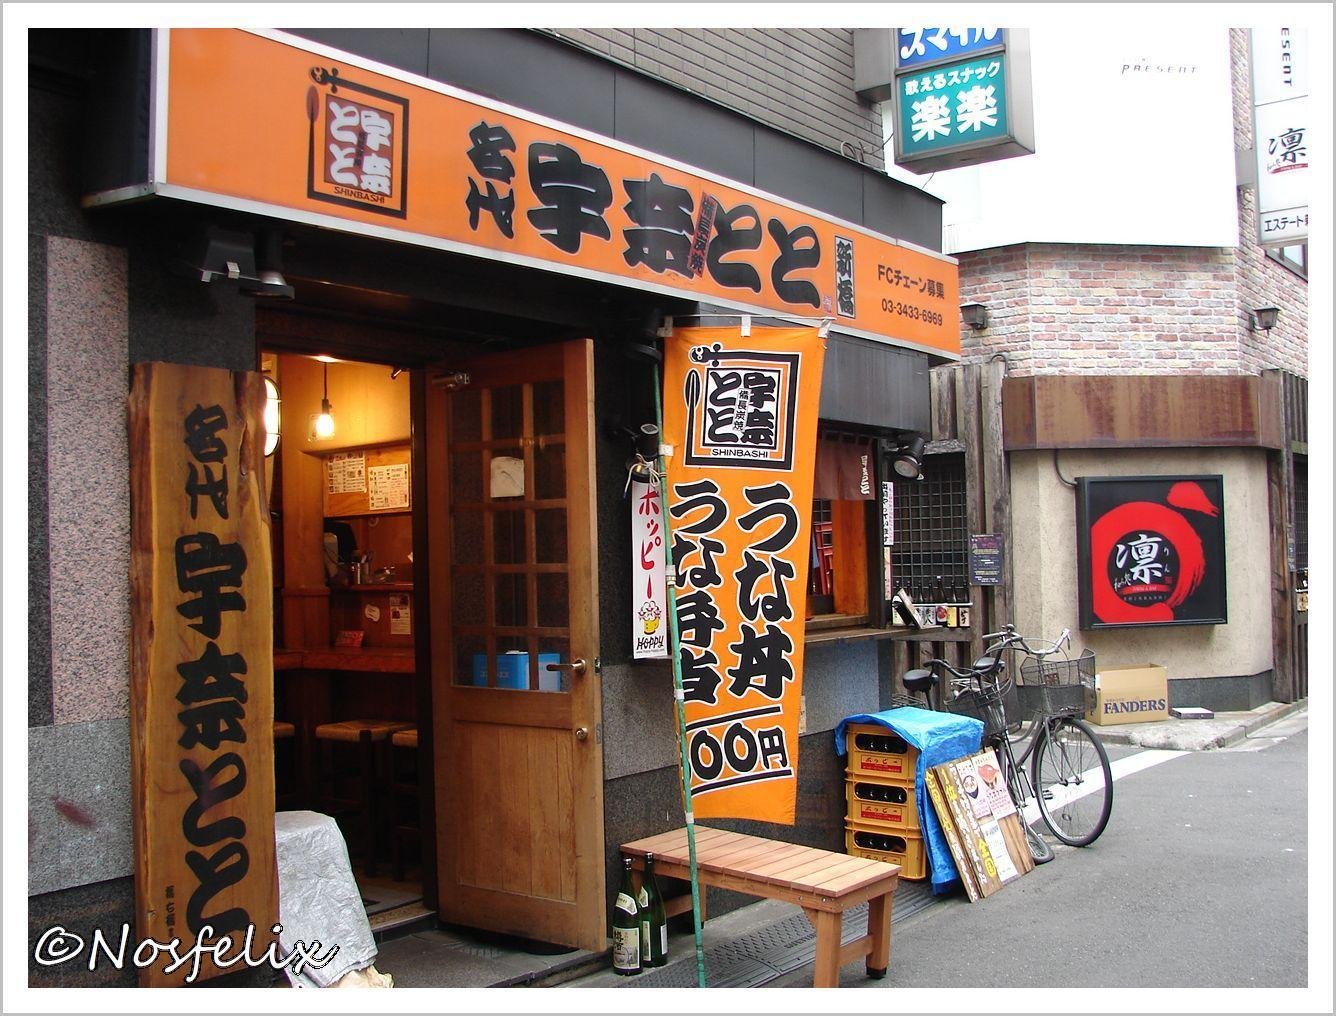 Japanese Restaurants In Tokyo Unatoto Second Entrance To The Restaurant Eating Out In Tokyo Cheapest Lunch Restaurants In Tokio Eating Out In Tokyo Cheapest Lunch Restaurants In Tokio